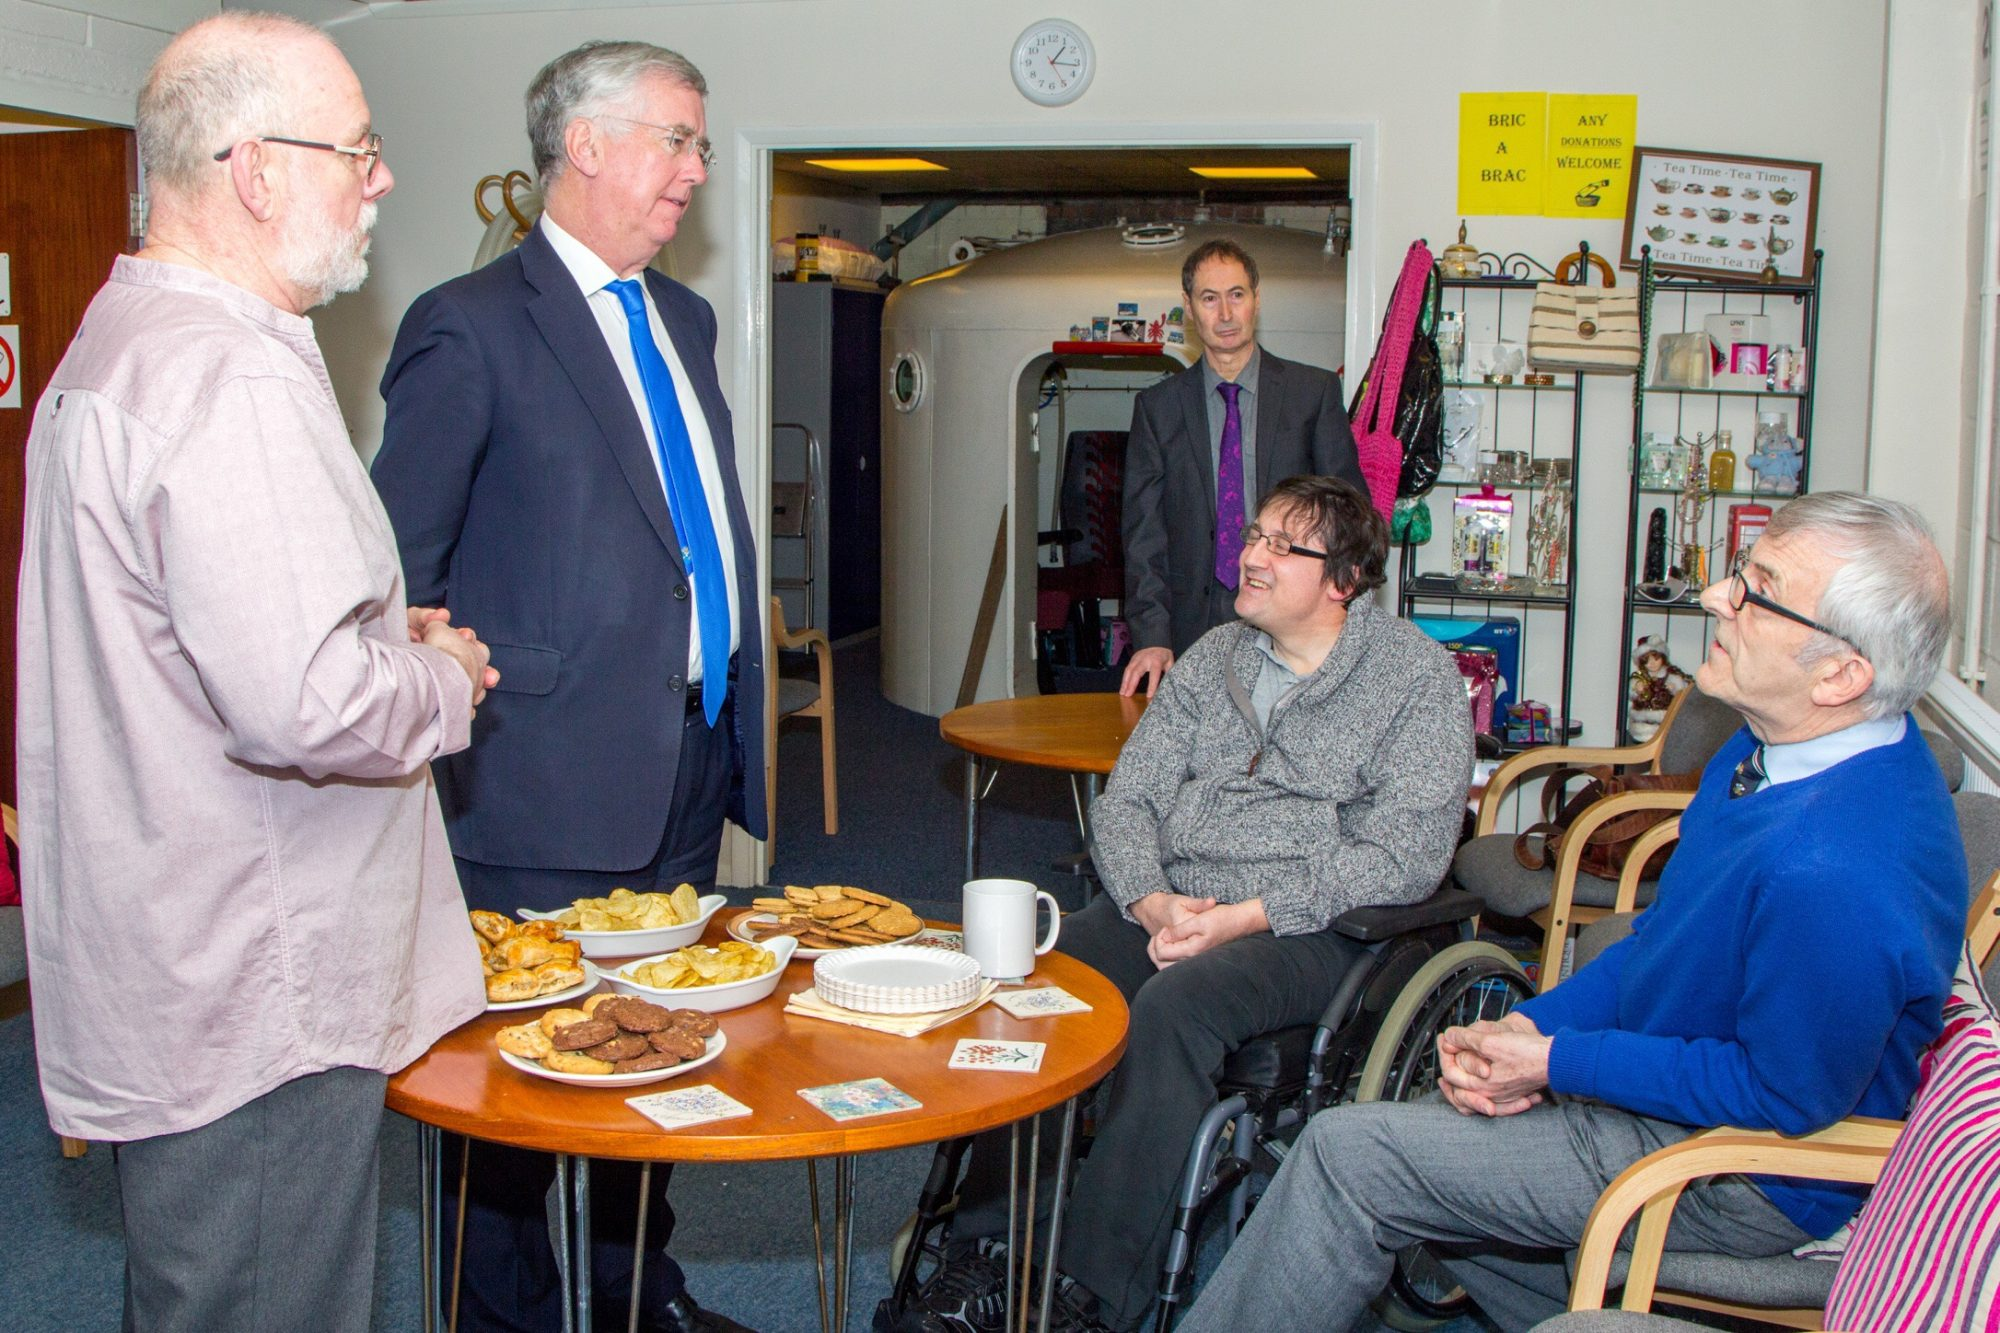 Mr Fallon chats with members of Swanley Therapy Centre